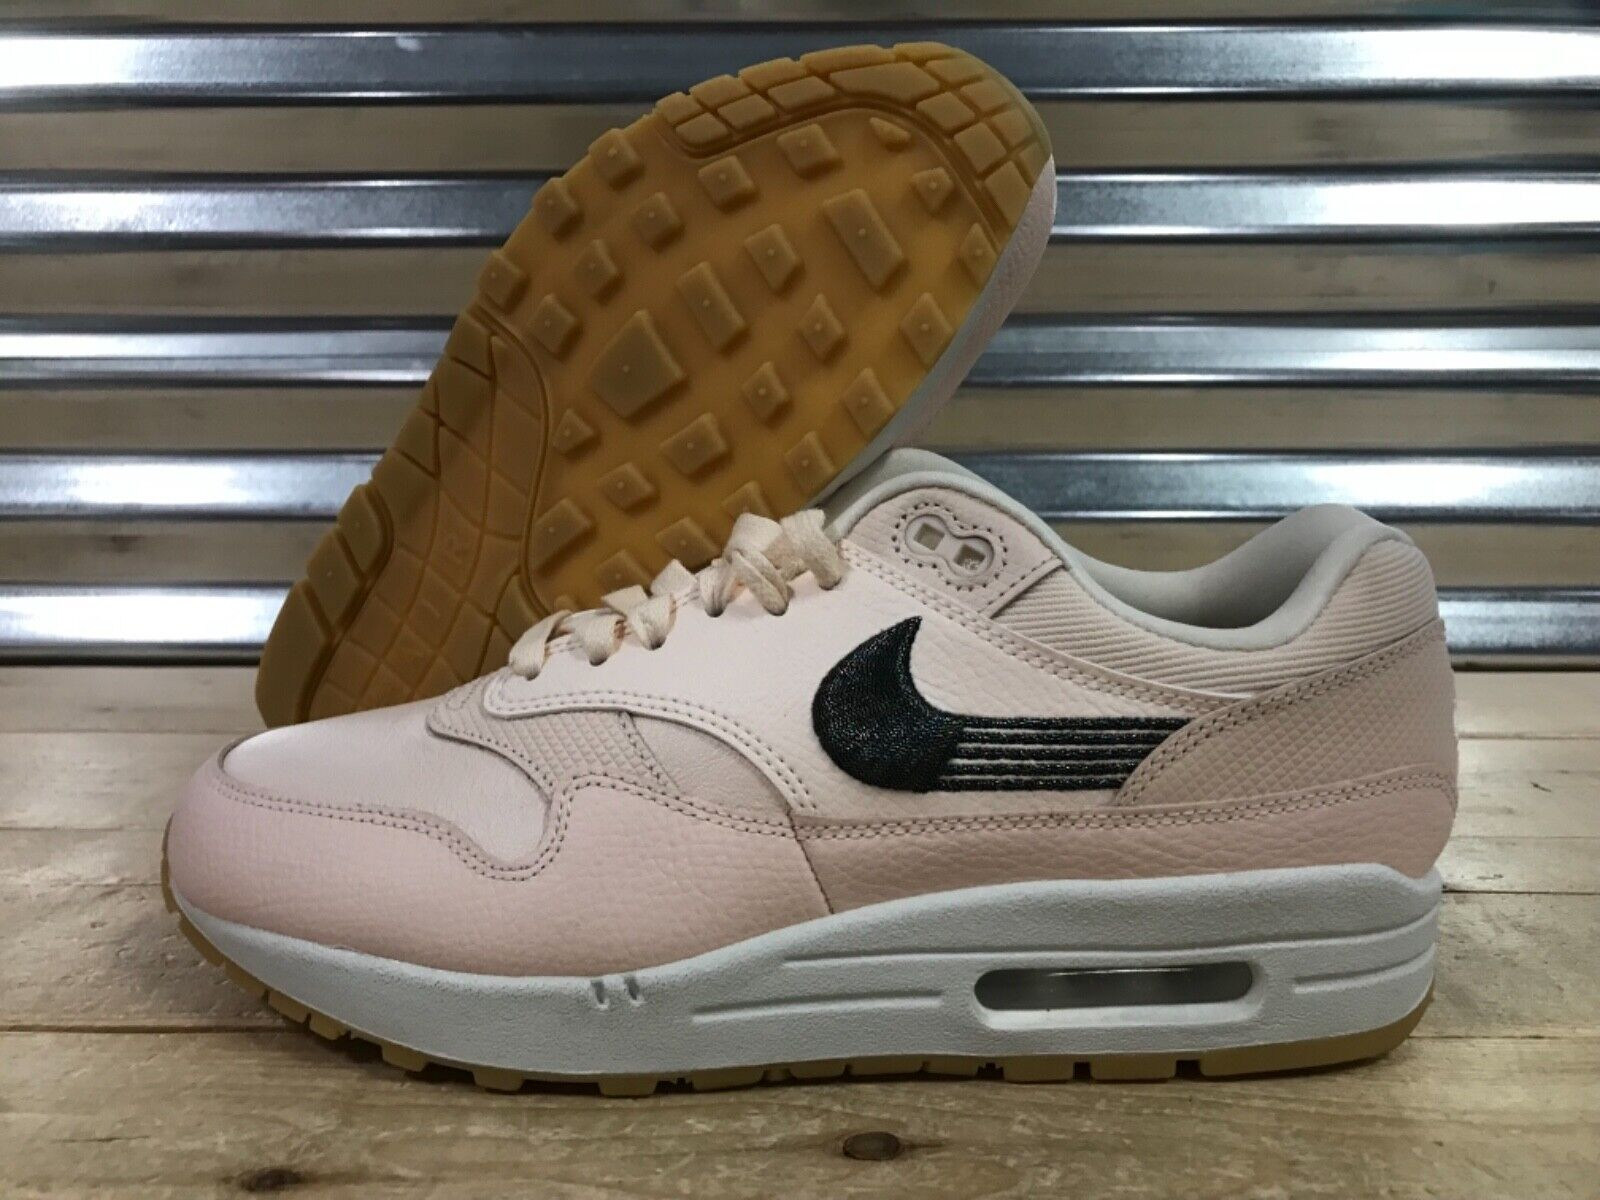 Nike Air Max Max Max 1 Premium Chaussures Goyave ICE Pour Femme Taille 10 (454746-800) 4e2cd3